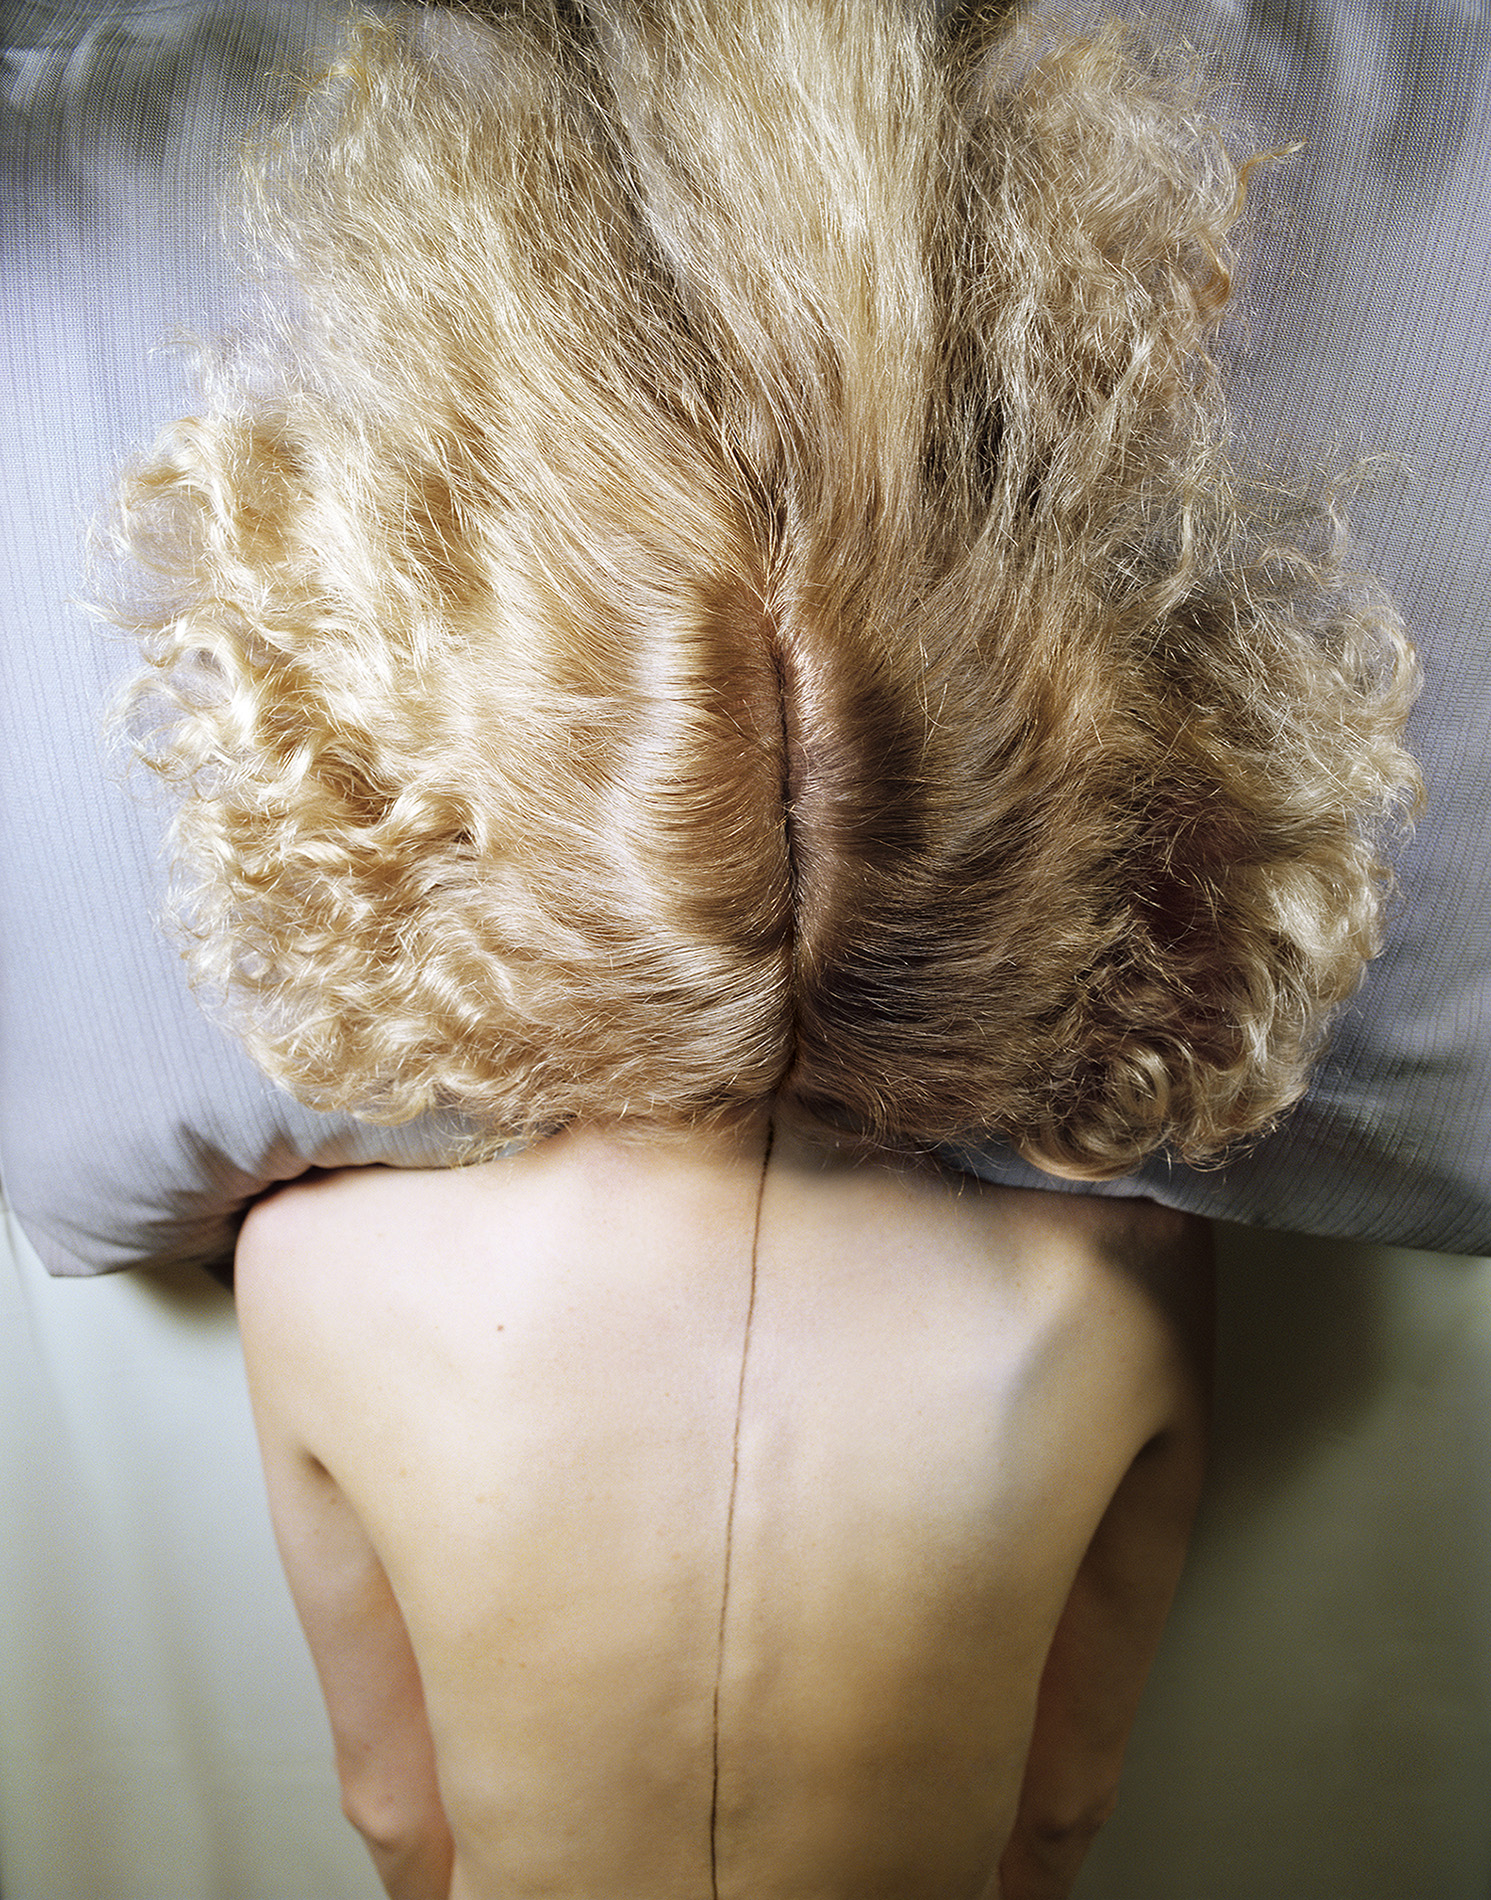 Jo Ann Callis,  Woman with Blond Hair, 1977